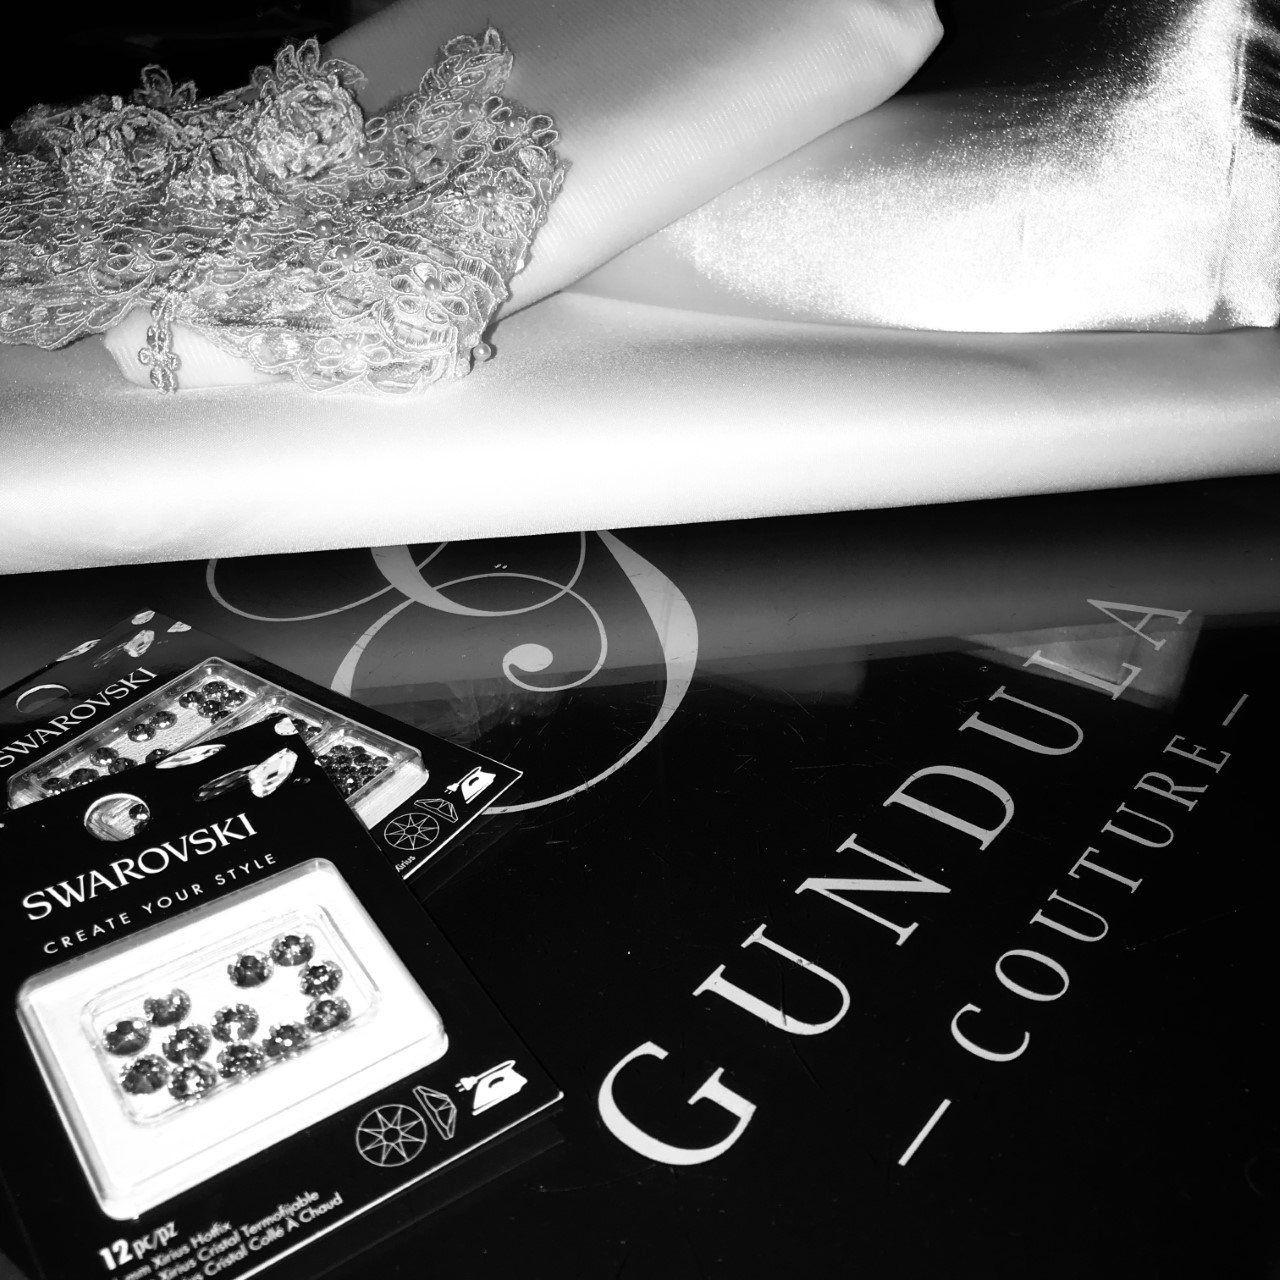 Purchased Fabrics Trims & Notions - Photographed over the Gundula Couture Logo - Photo by Gundula hirn